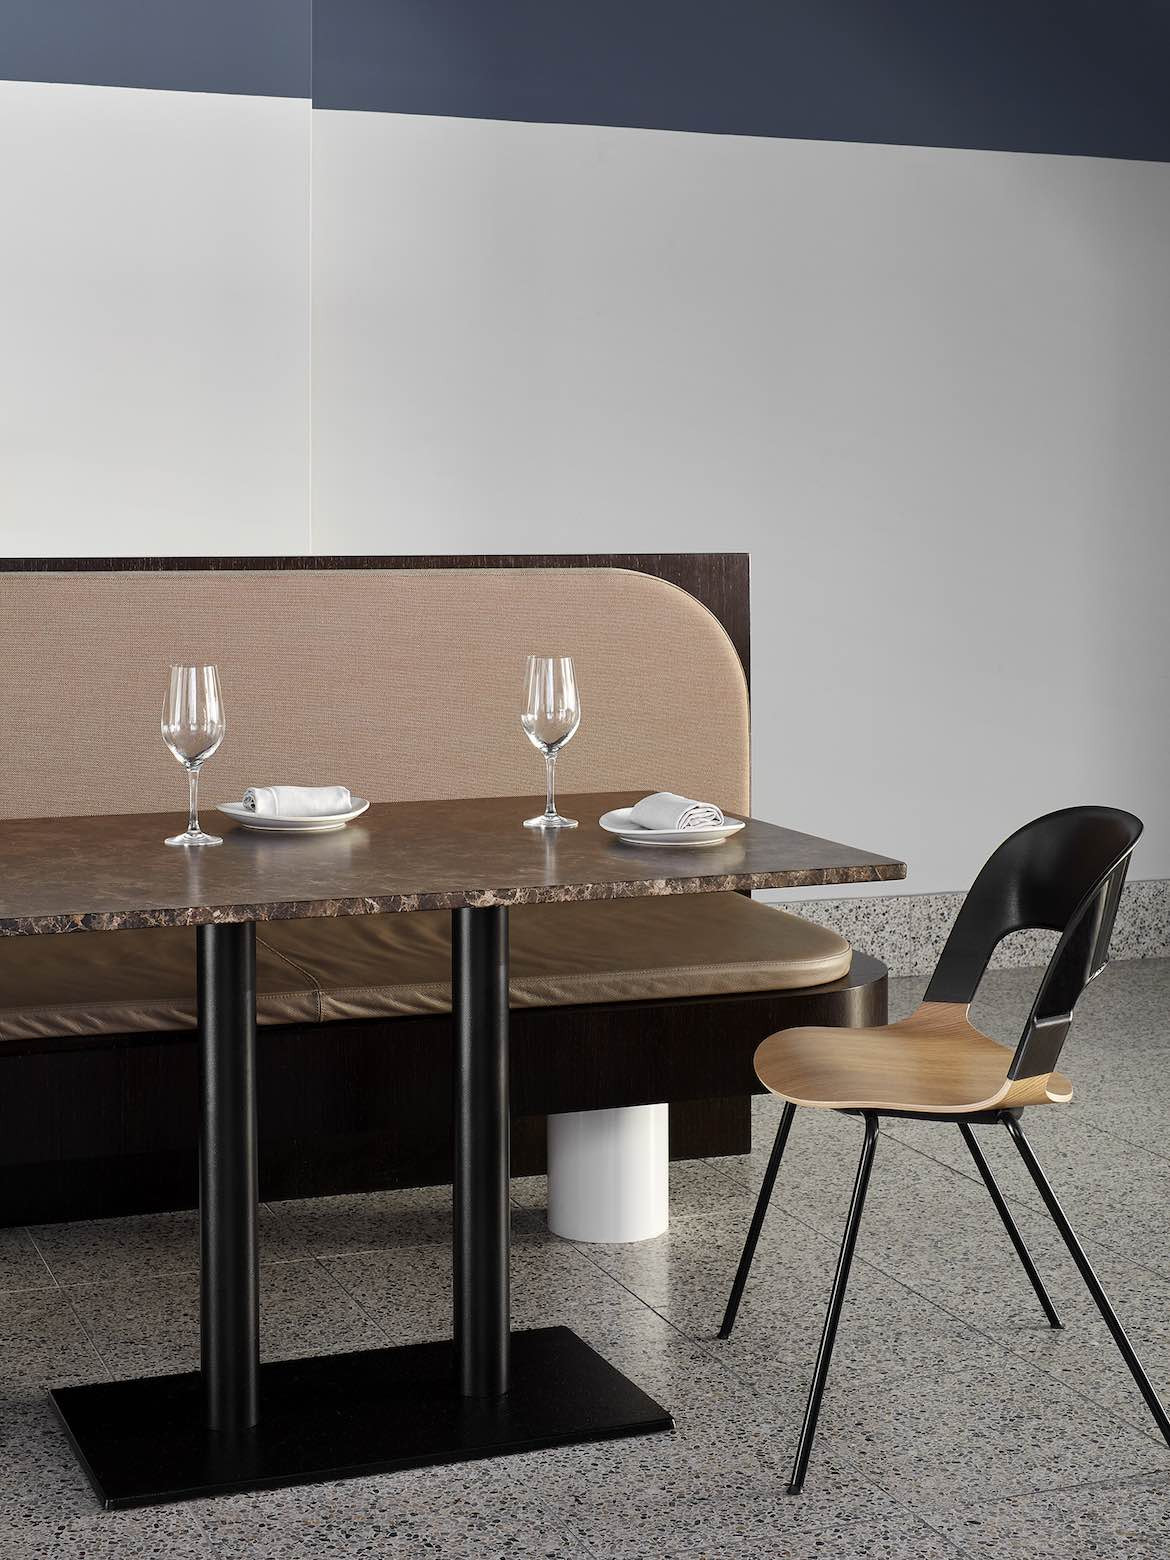 Table, chair and benchseat in the Stables Bar by State of Kin.